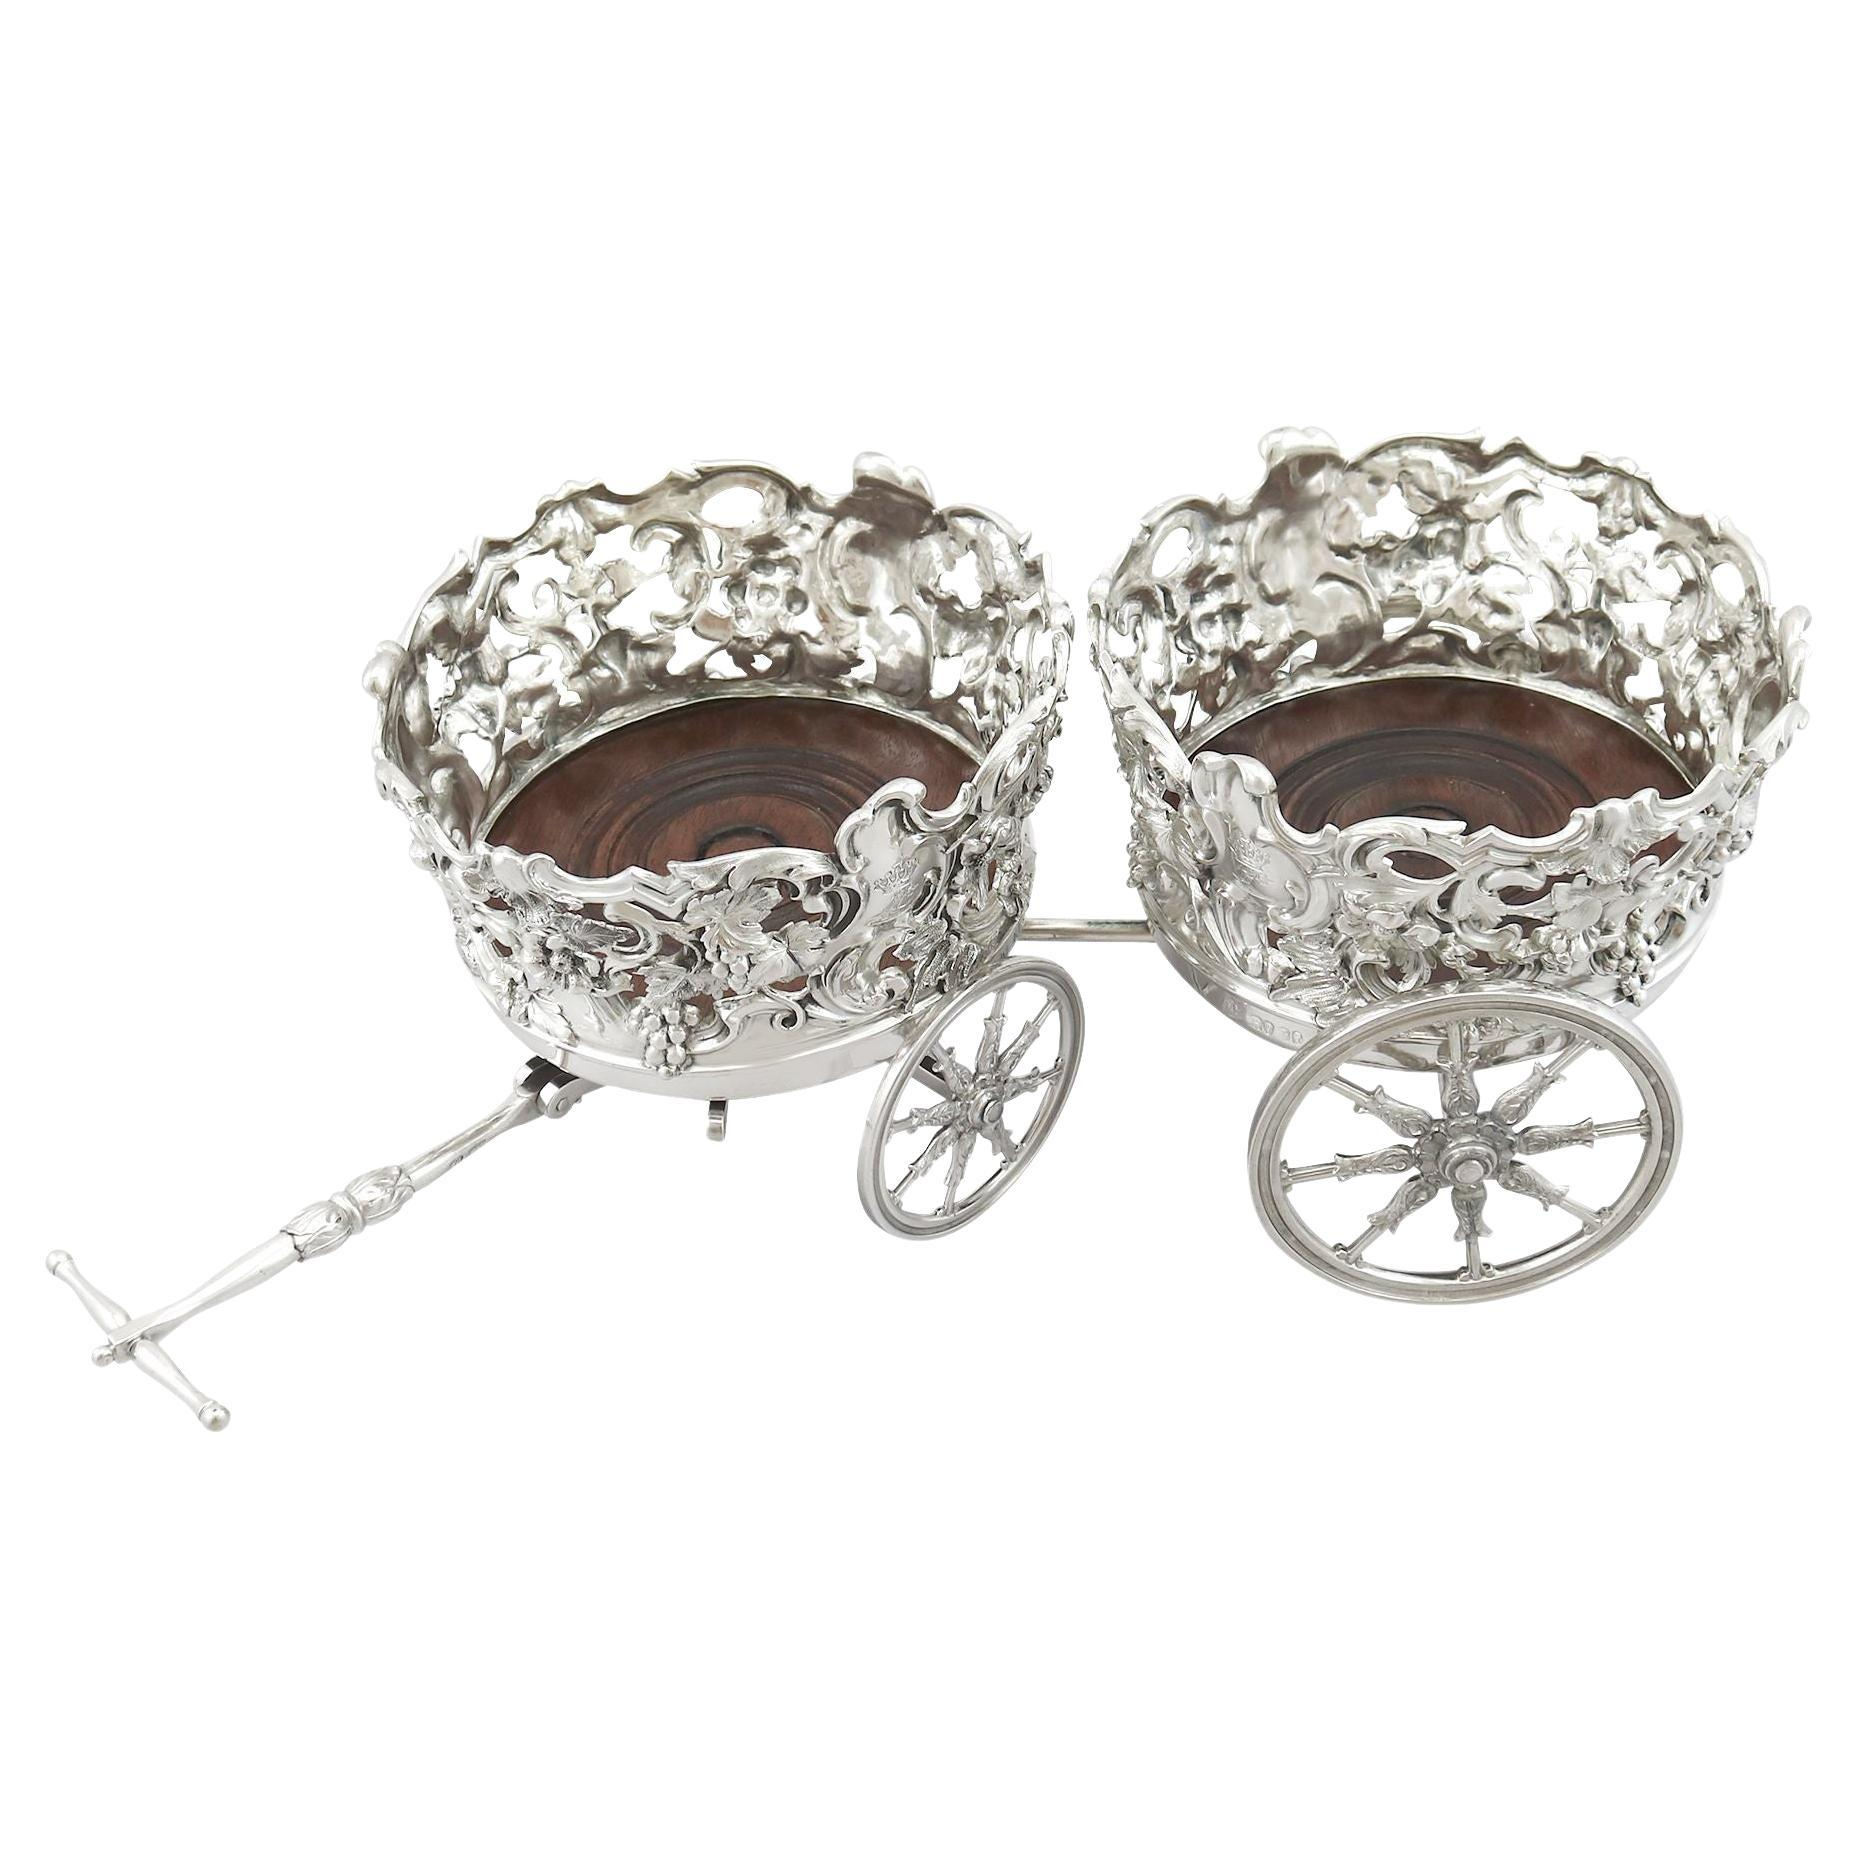 Antique Victorian Sterling Silver Double Coaster Trolley, 1839